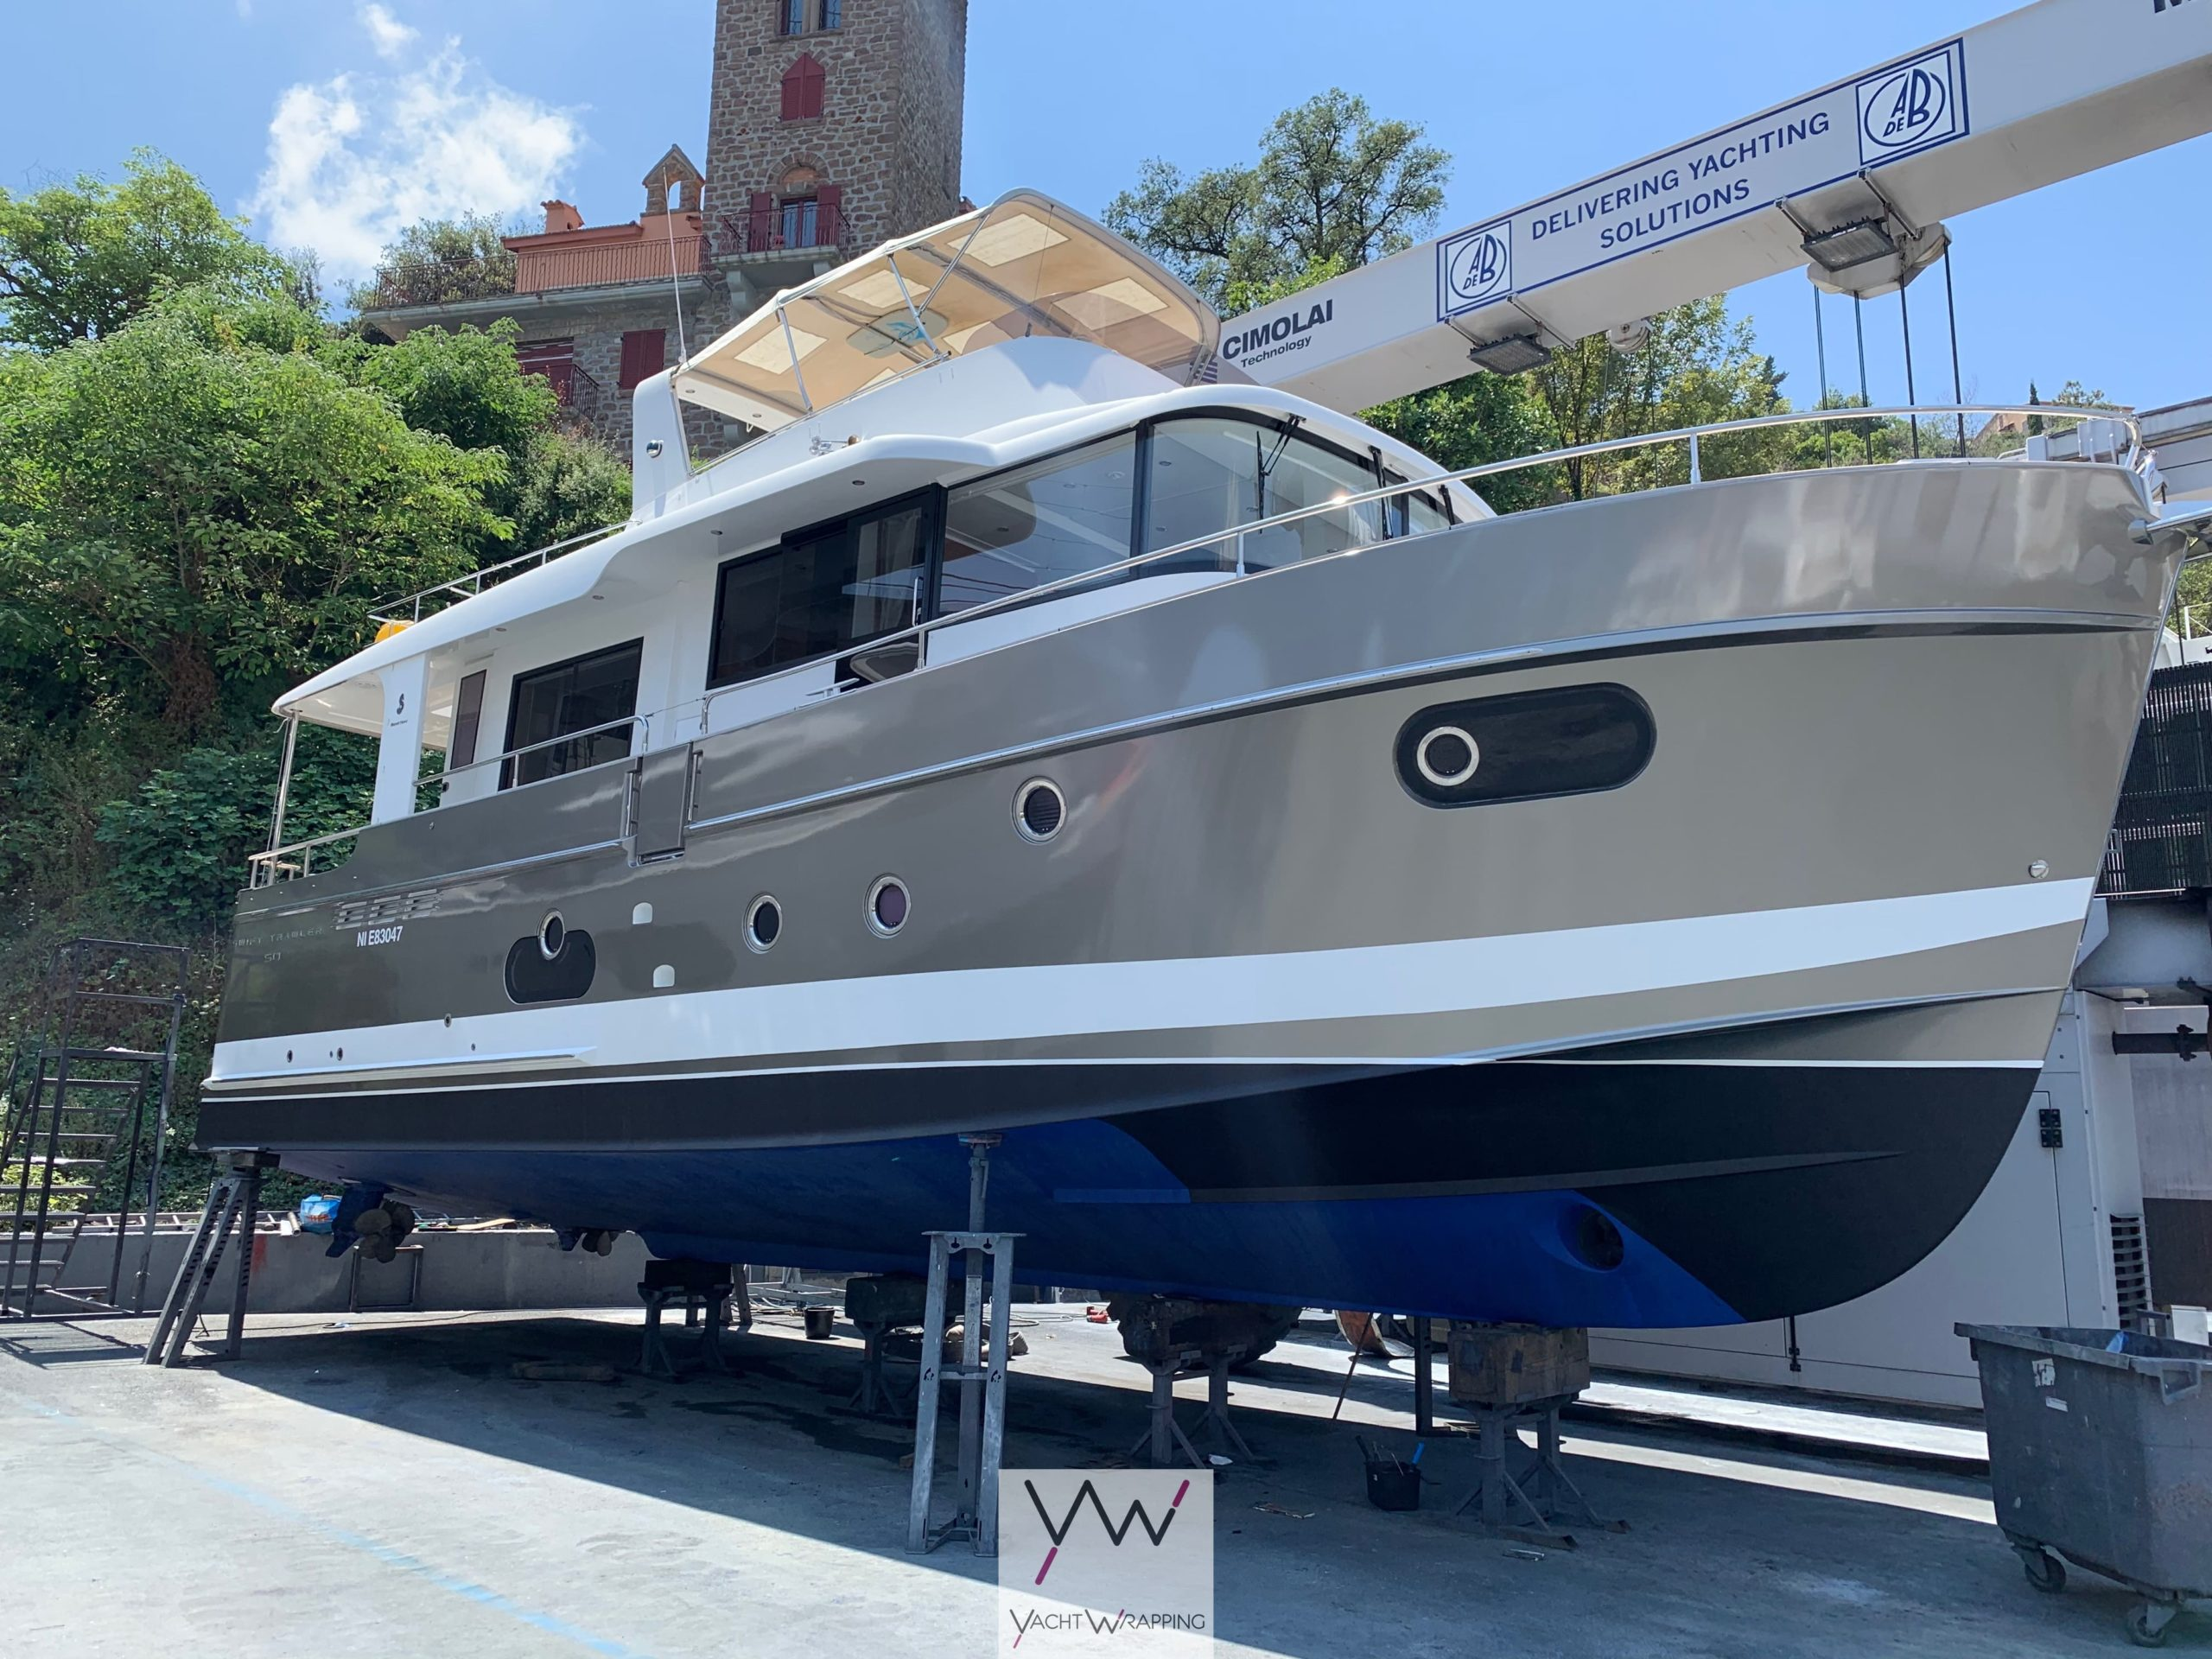 Swift Trawler 50 - Total covering